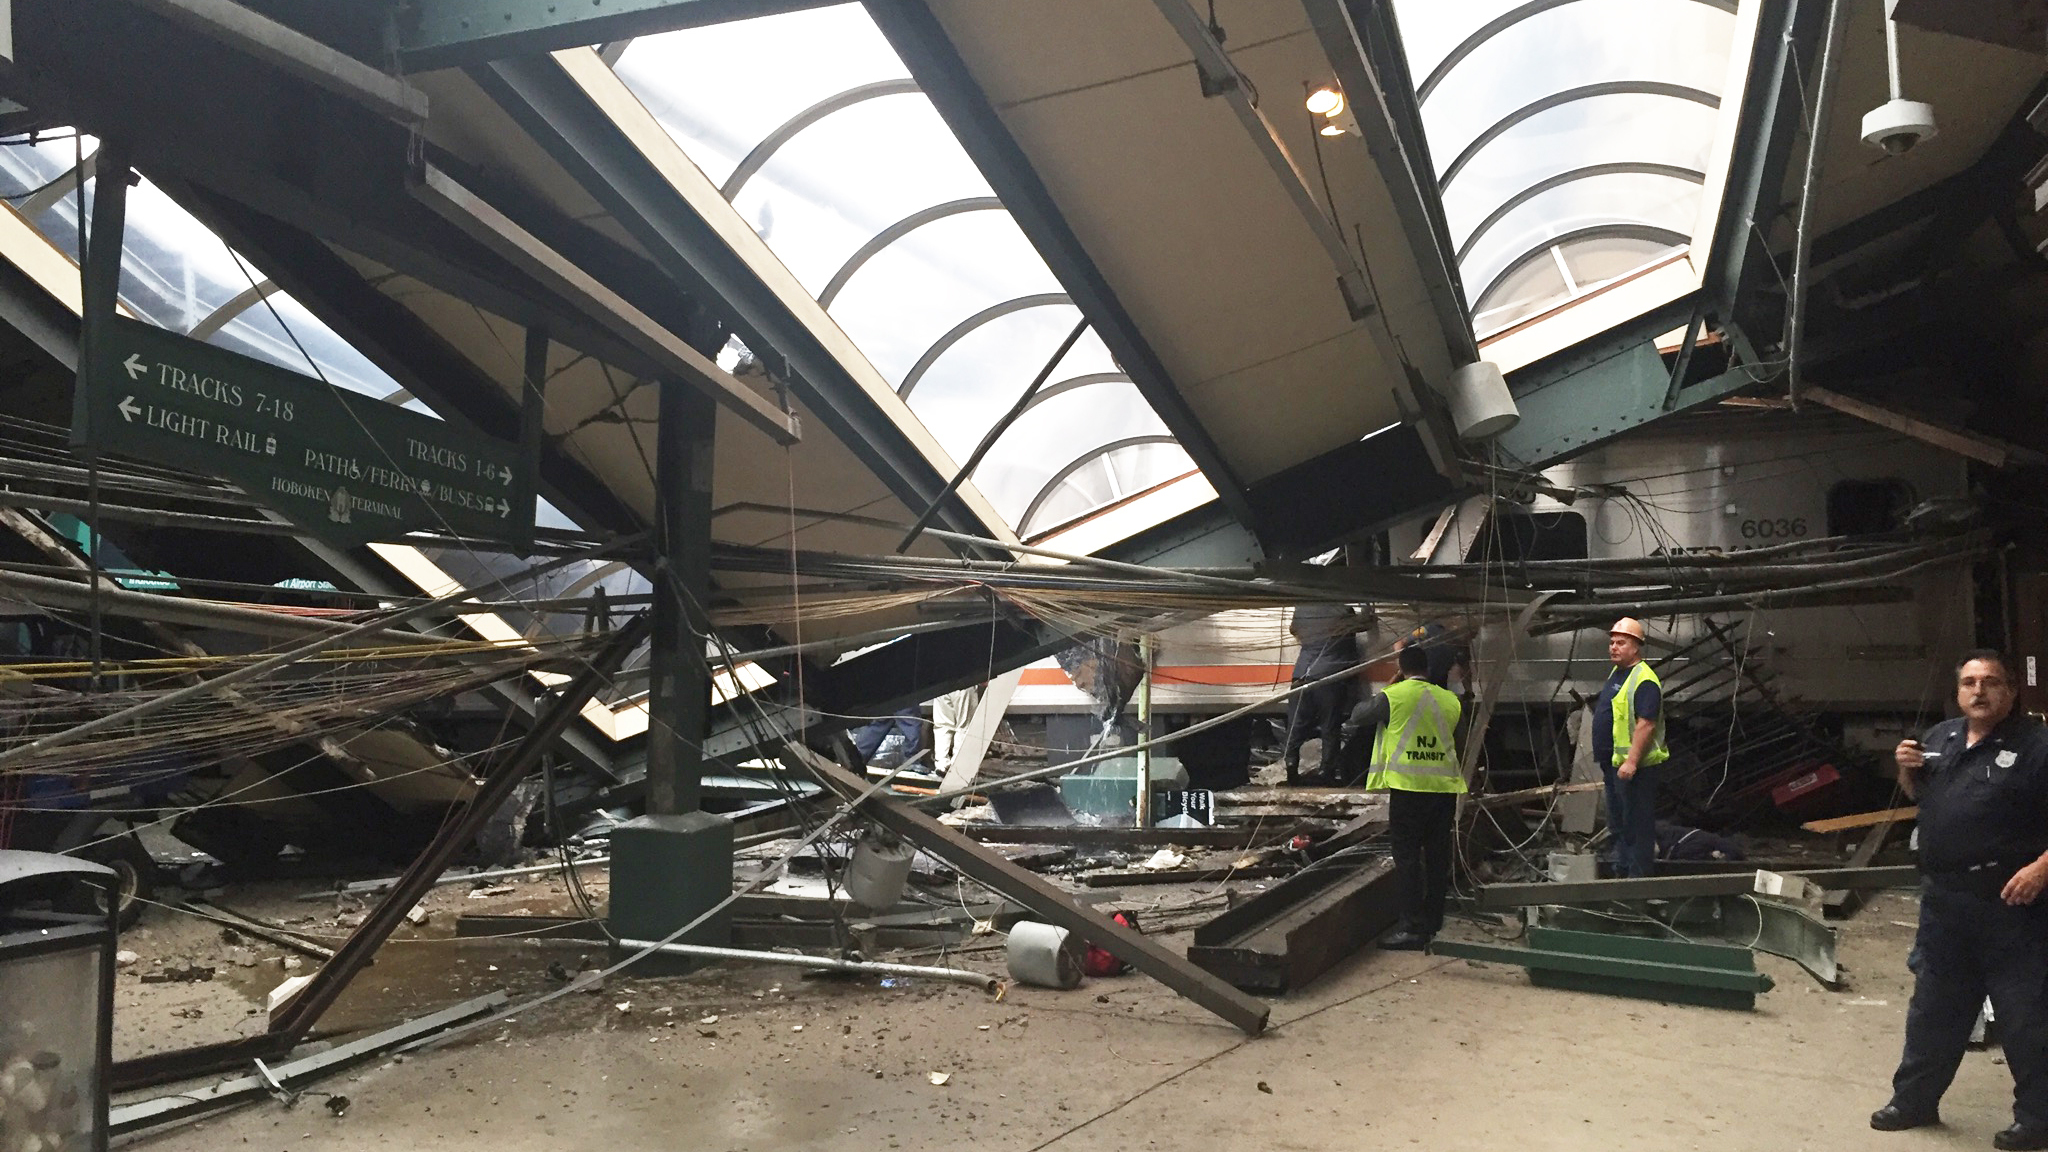 It Was Going Full Full Force Train Crashes Into Hoboken Terminal Killing 1 The Two Way Npr